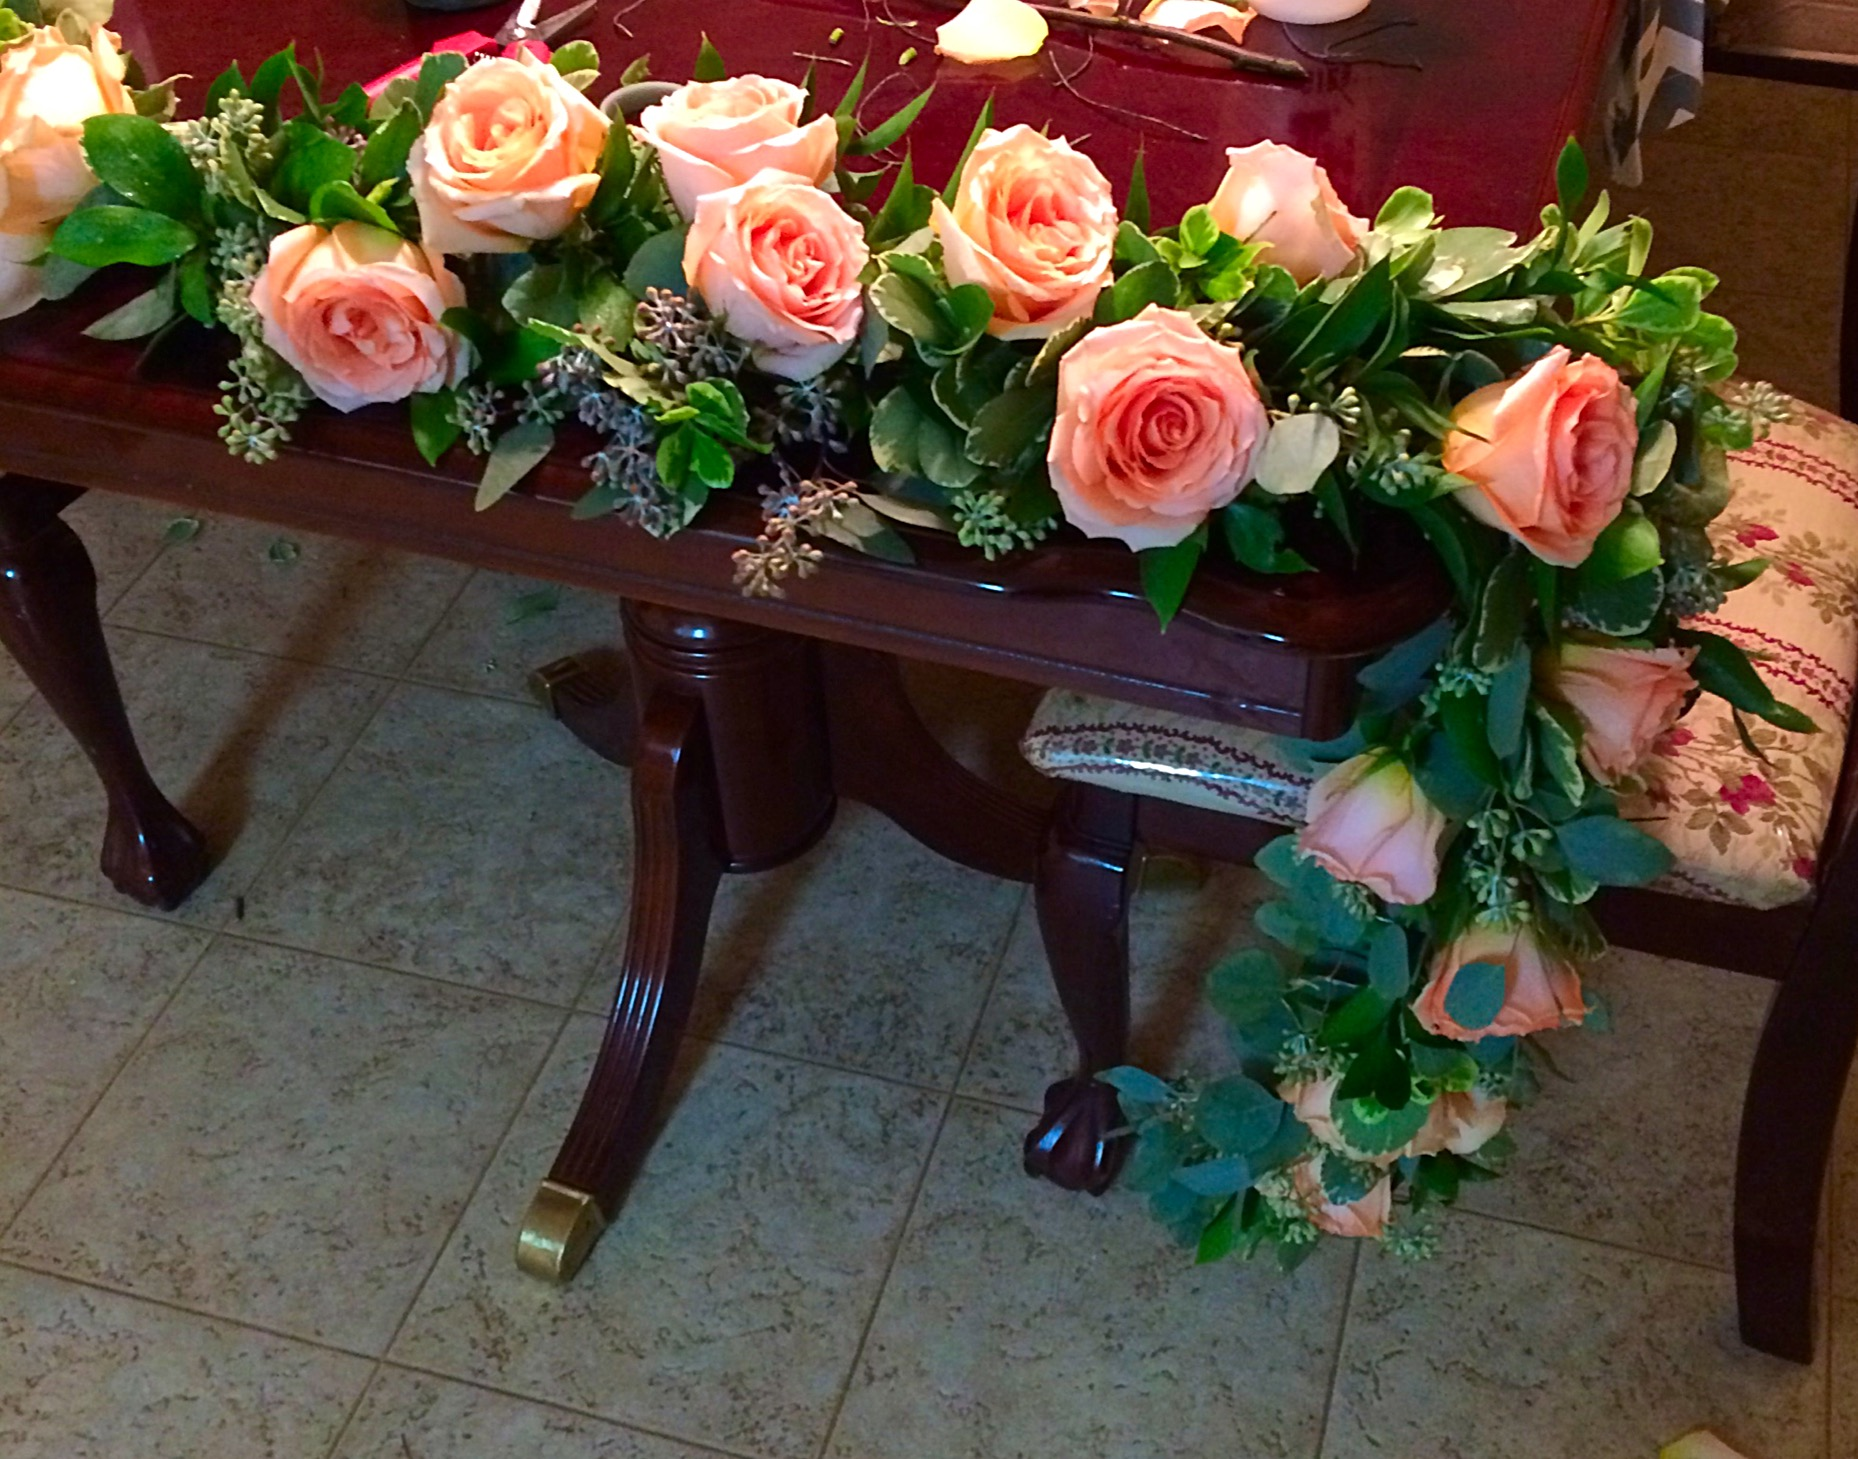 Excuse My Messy Kitchen But Heres The Garland All Finished After I Added A Few Stems Of White Veronica